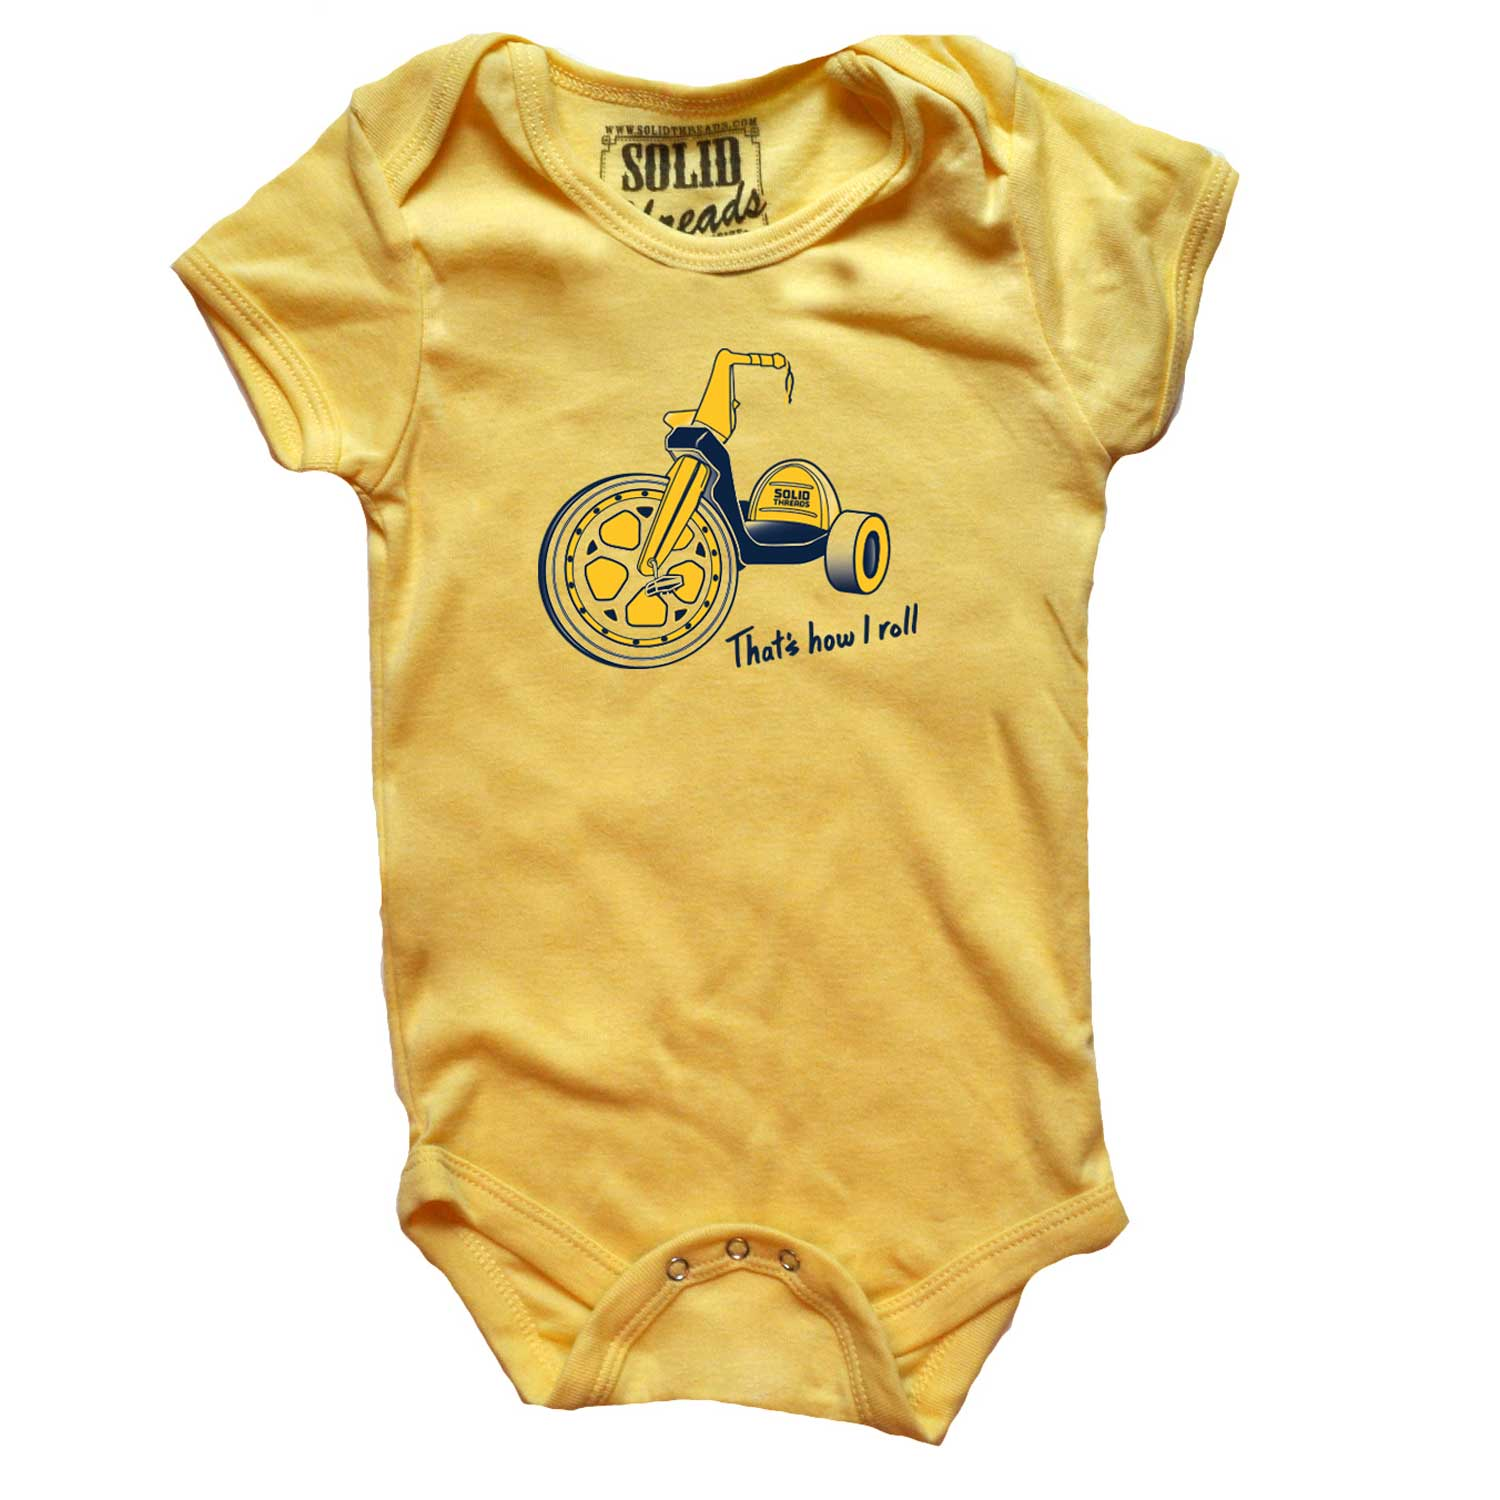 Baby That's How I Roll Retro Onesie | SOLID THREADS